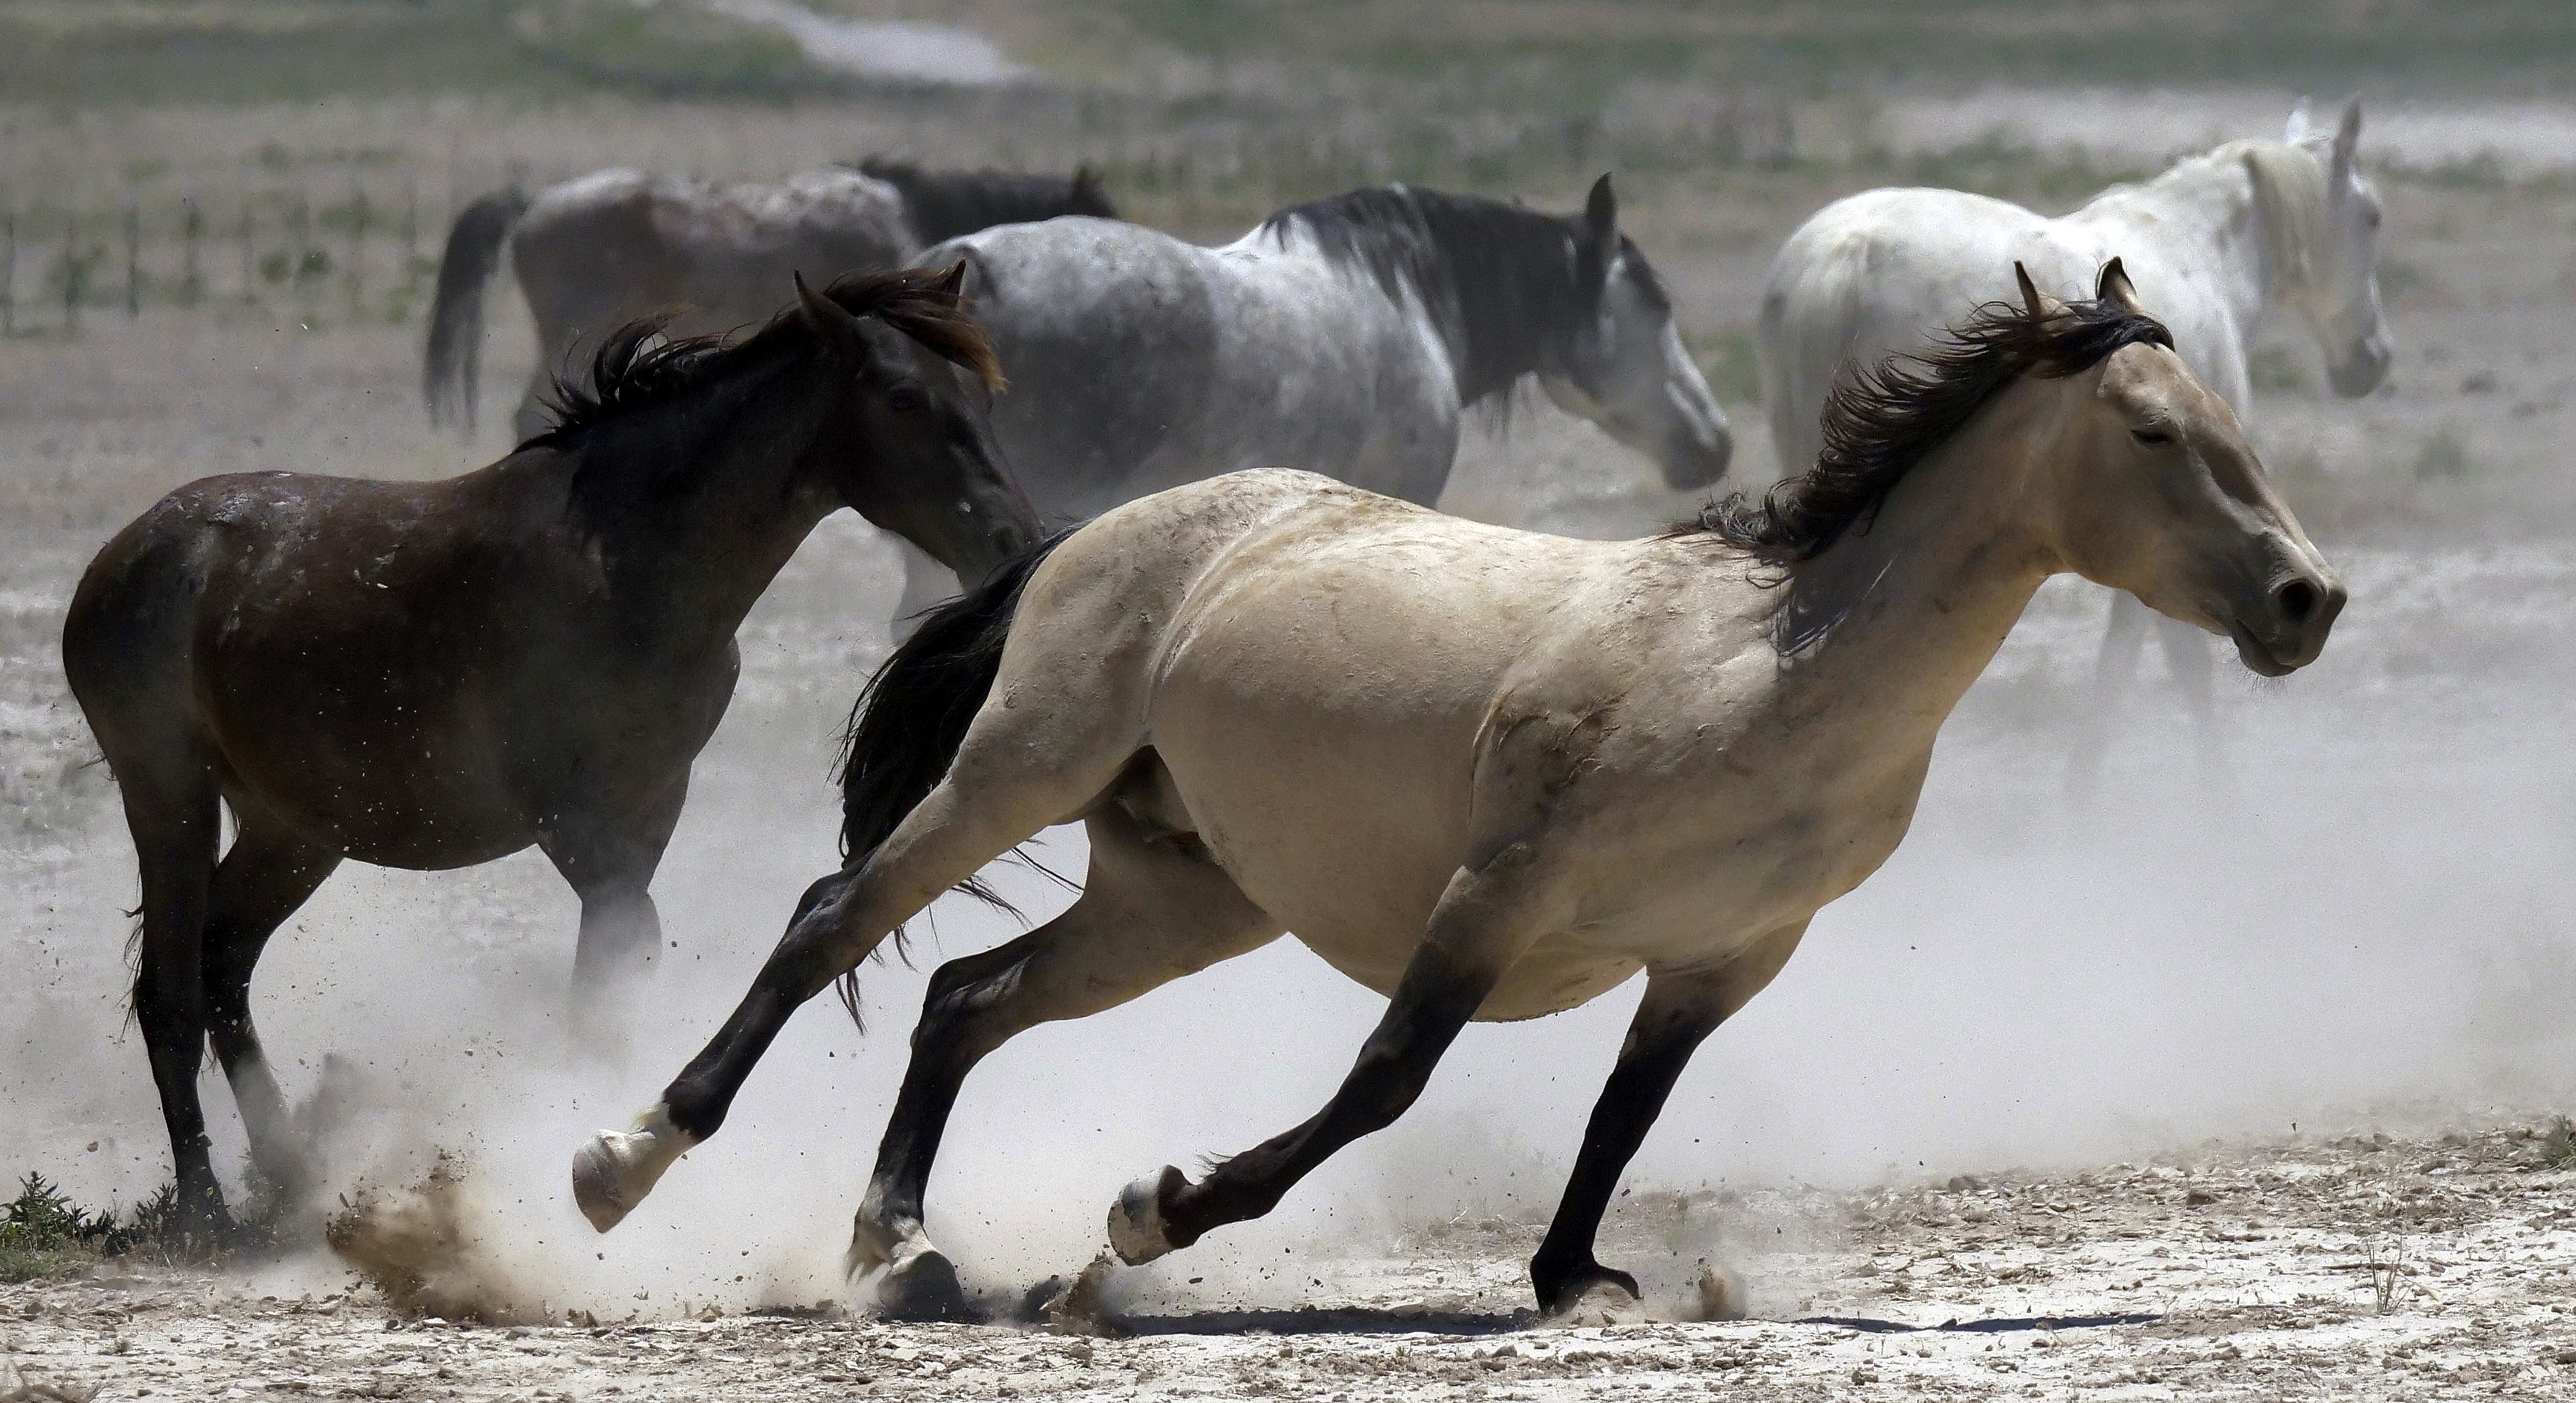 Feds aim to corral 800 wild horses from eastern Nevada range